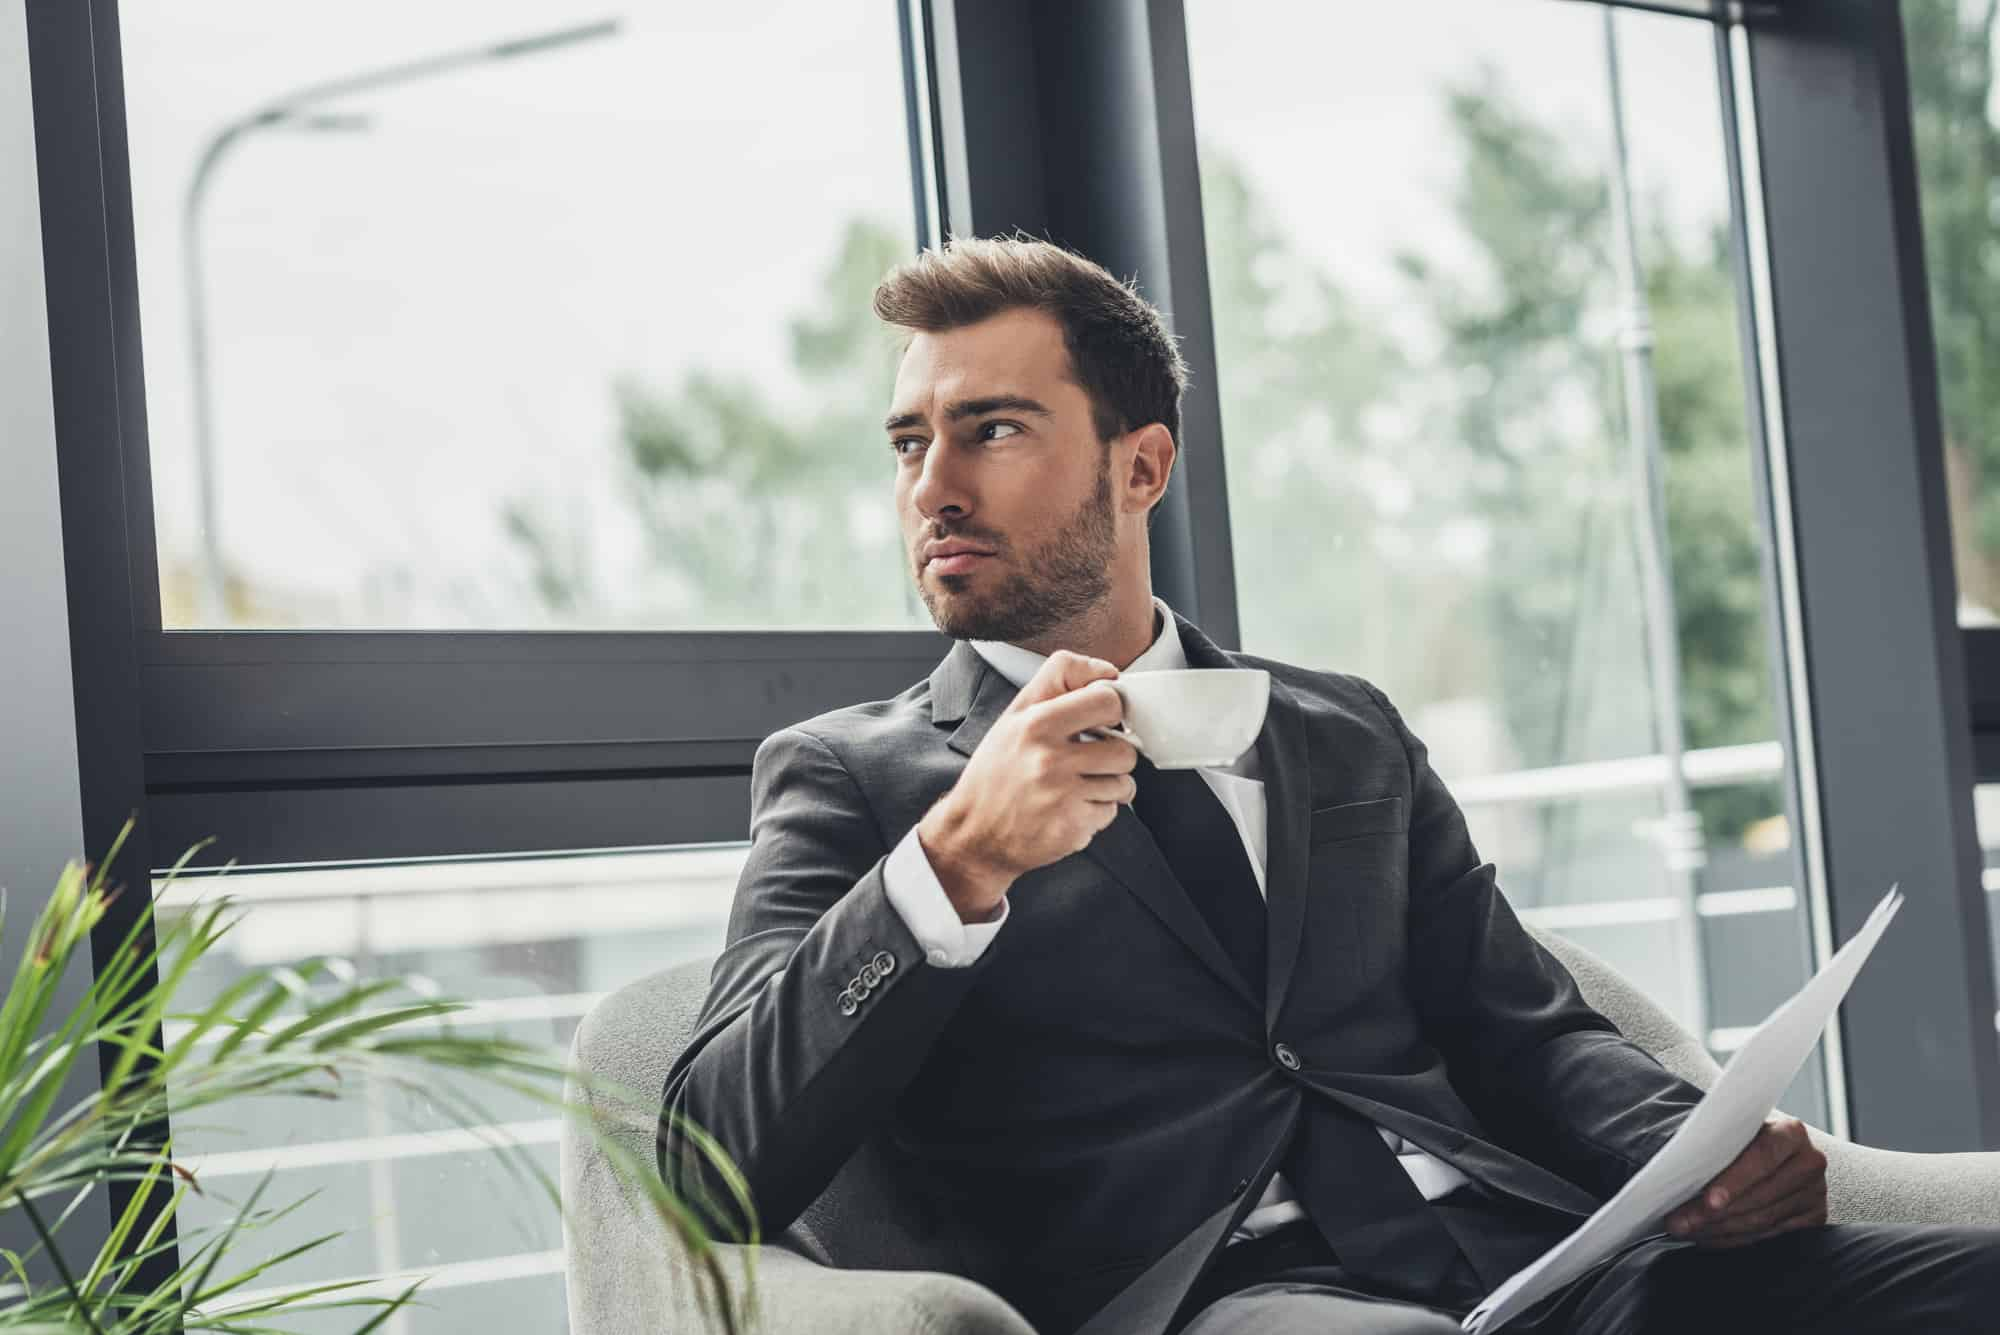 How to handle leadership mistakes